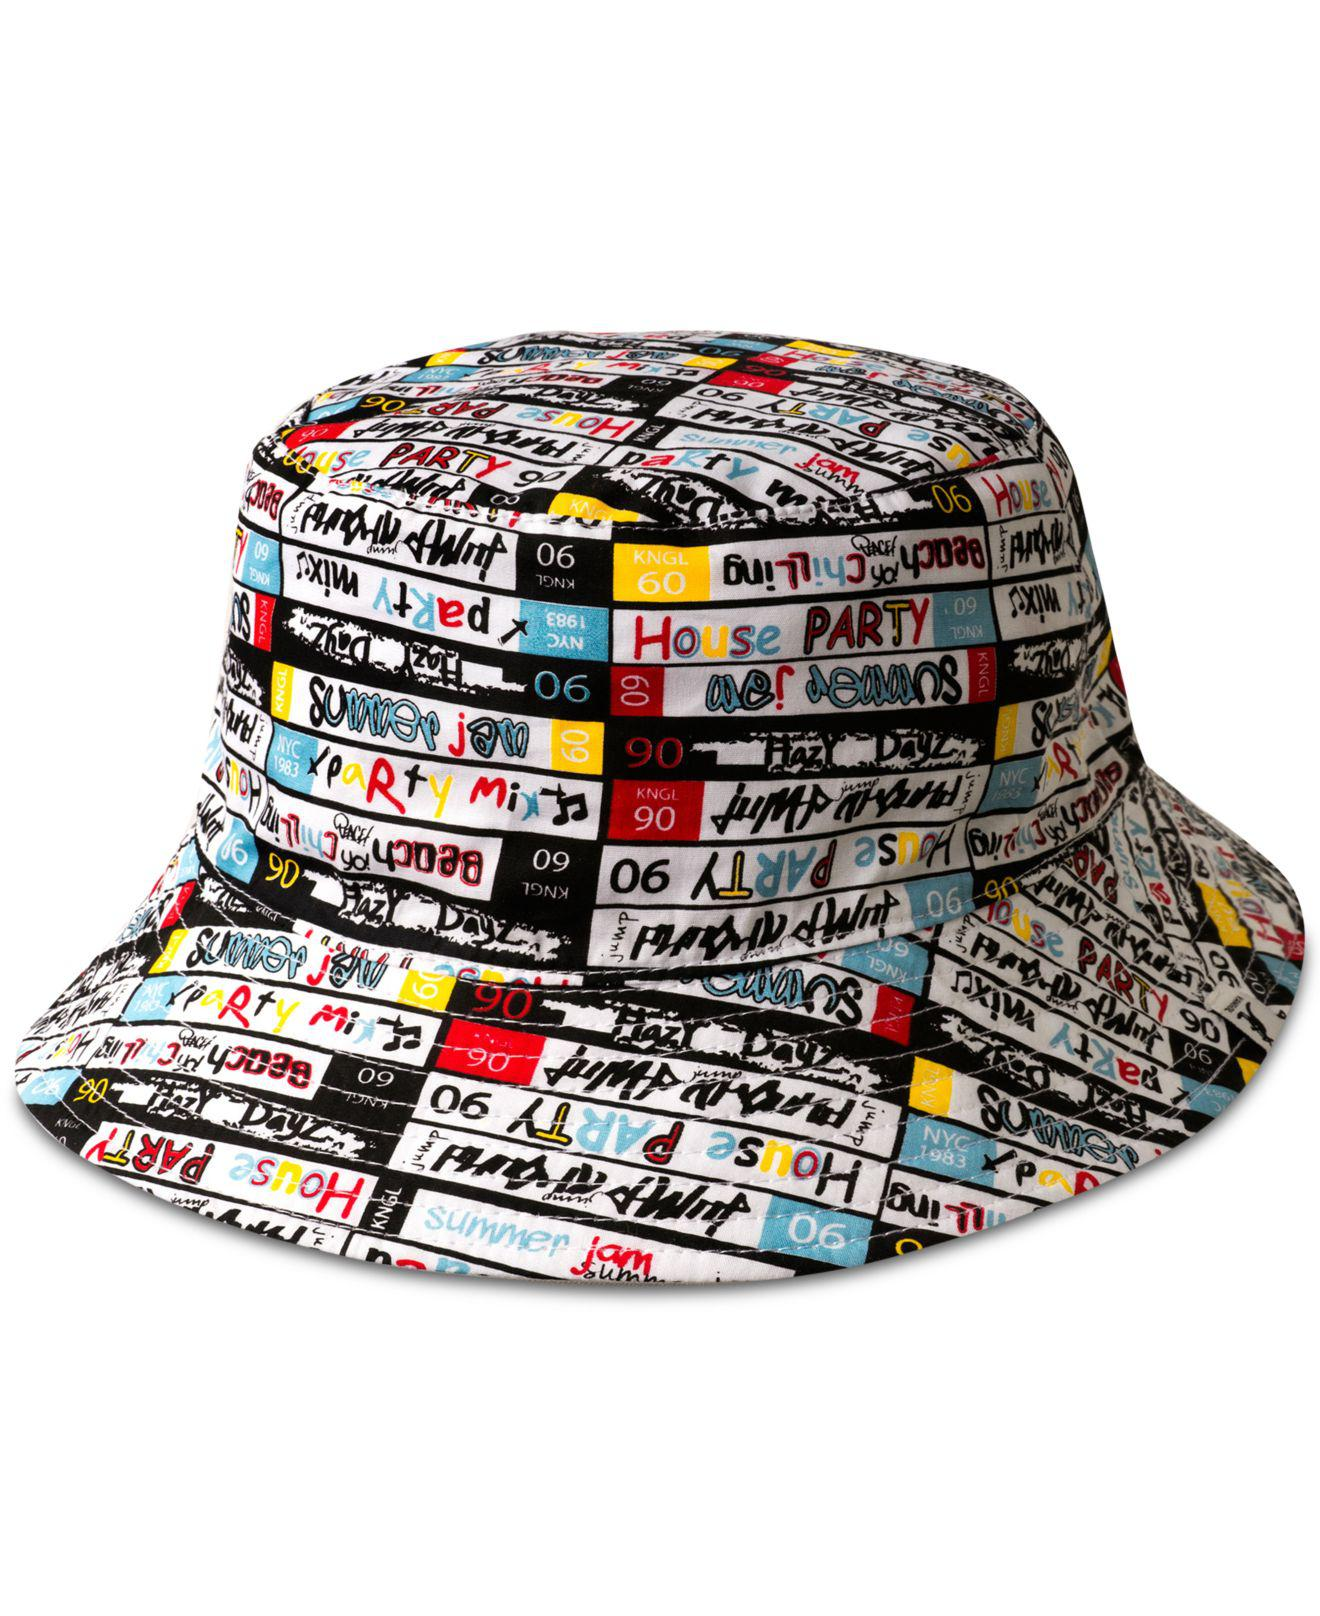 09673e70aa4 ... new product f2e39 479ae Lyst - Kangol Mens Mix Tape Reversible Bucket  Hat in White f ...